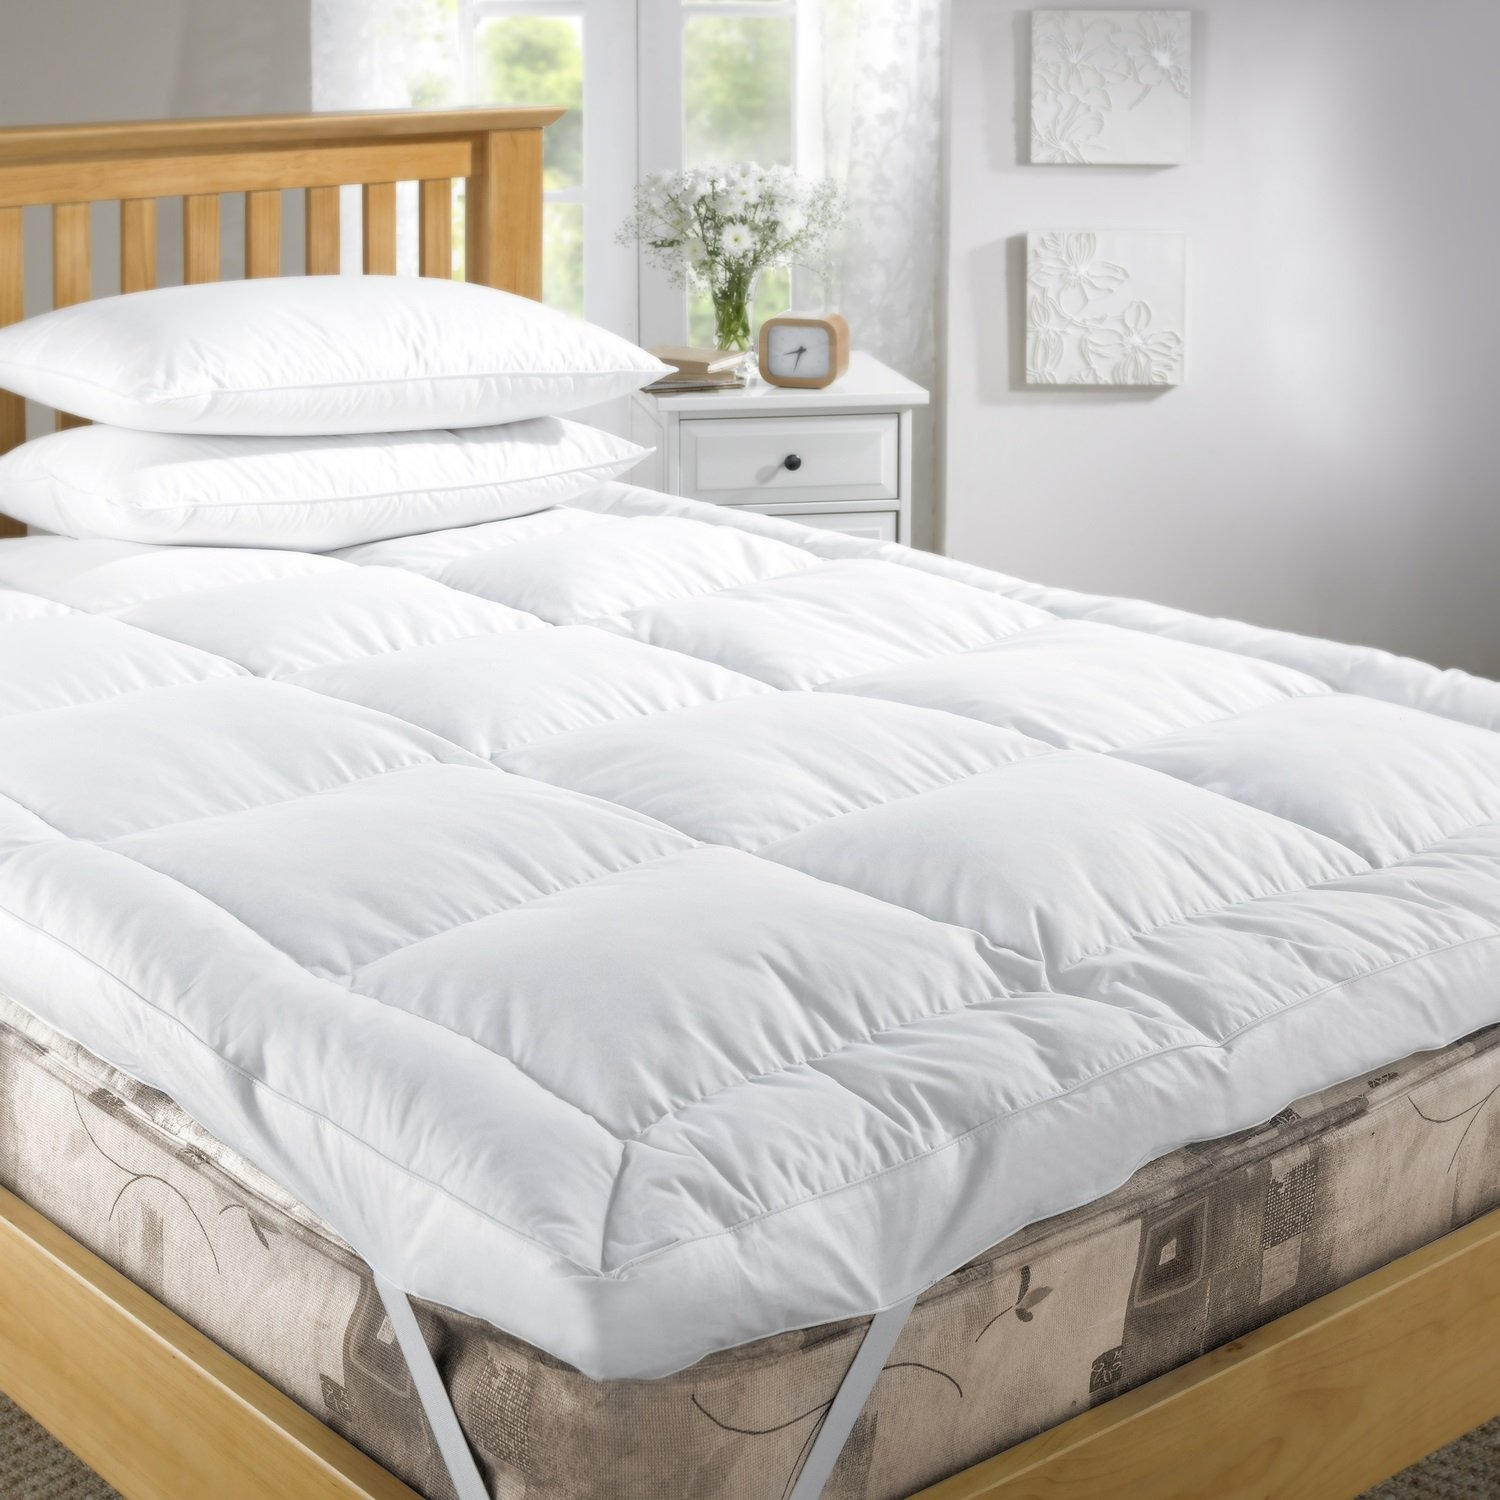 kitchen construction cover uk sleep original box co bed cotton topper amazon home mattress company cambric thick double duck feather dp extra